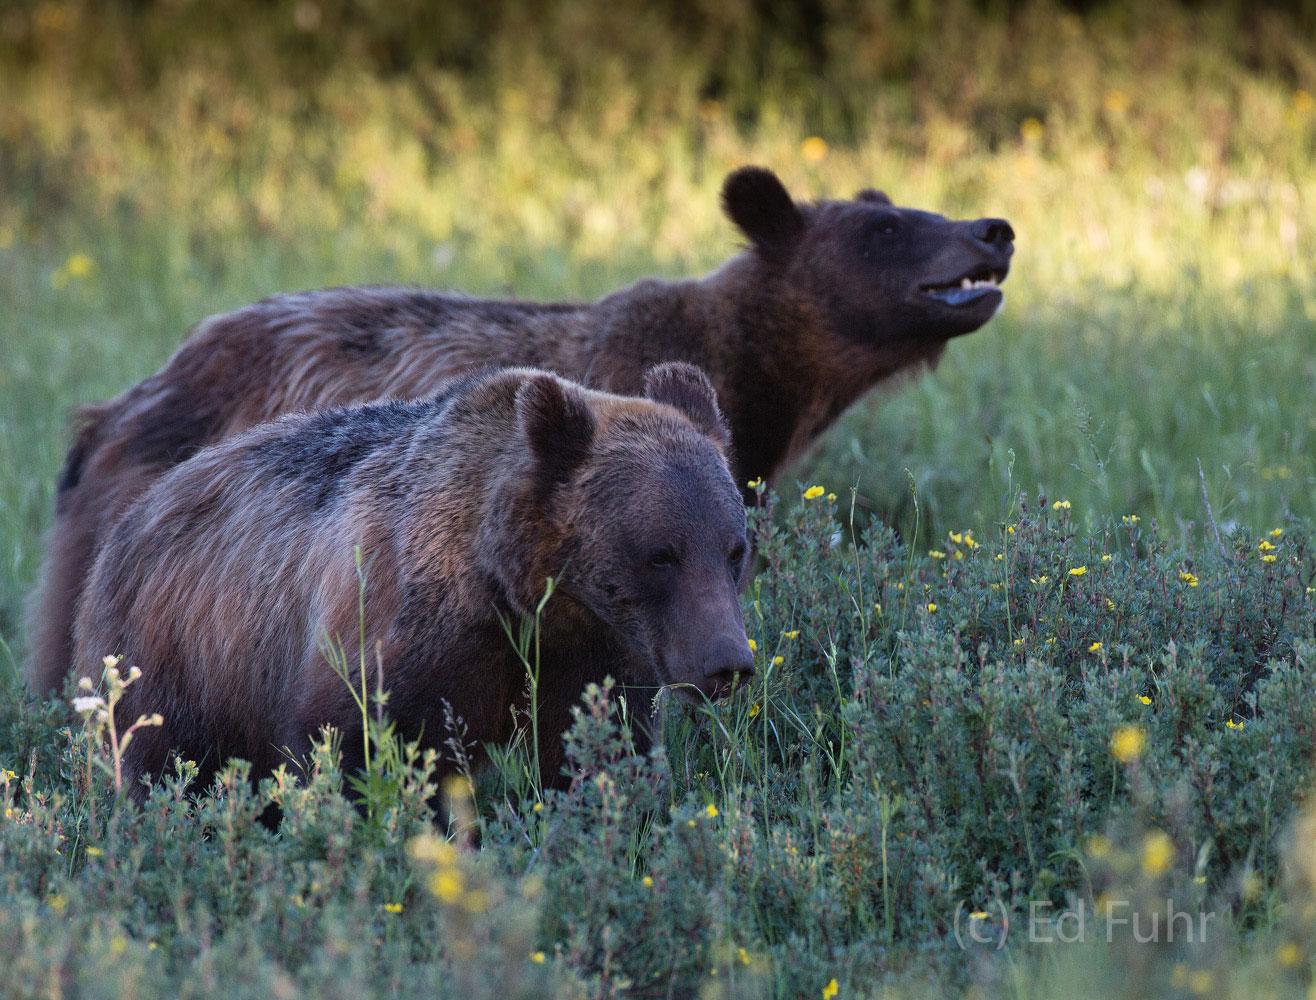 Grizzly's 610'ss two cubs forage on grasses and wildflowers, 2013.